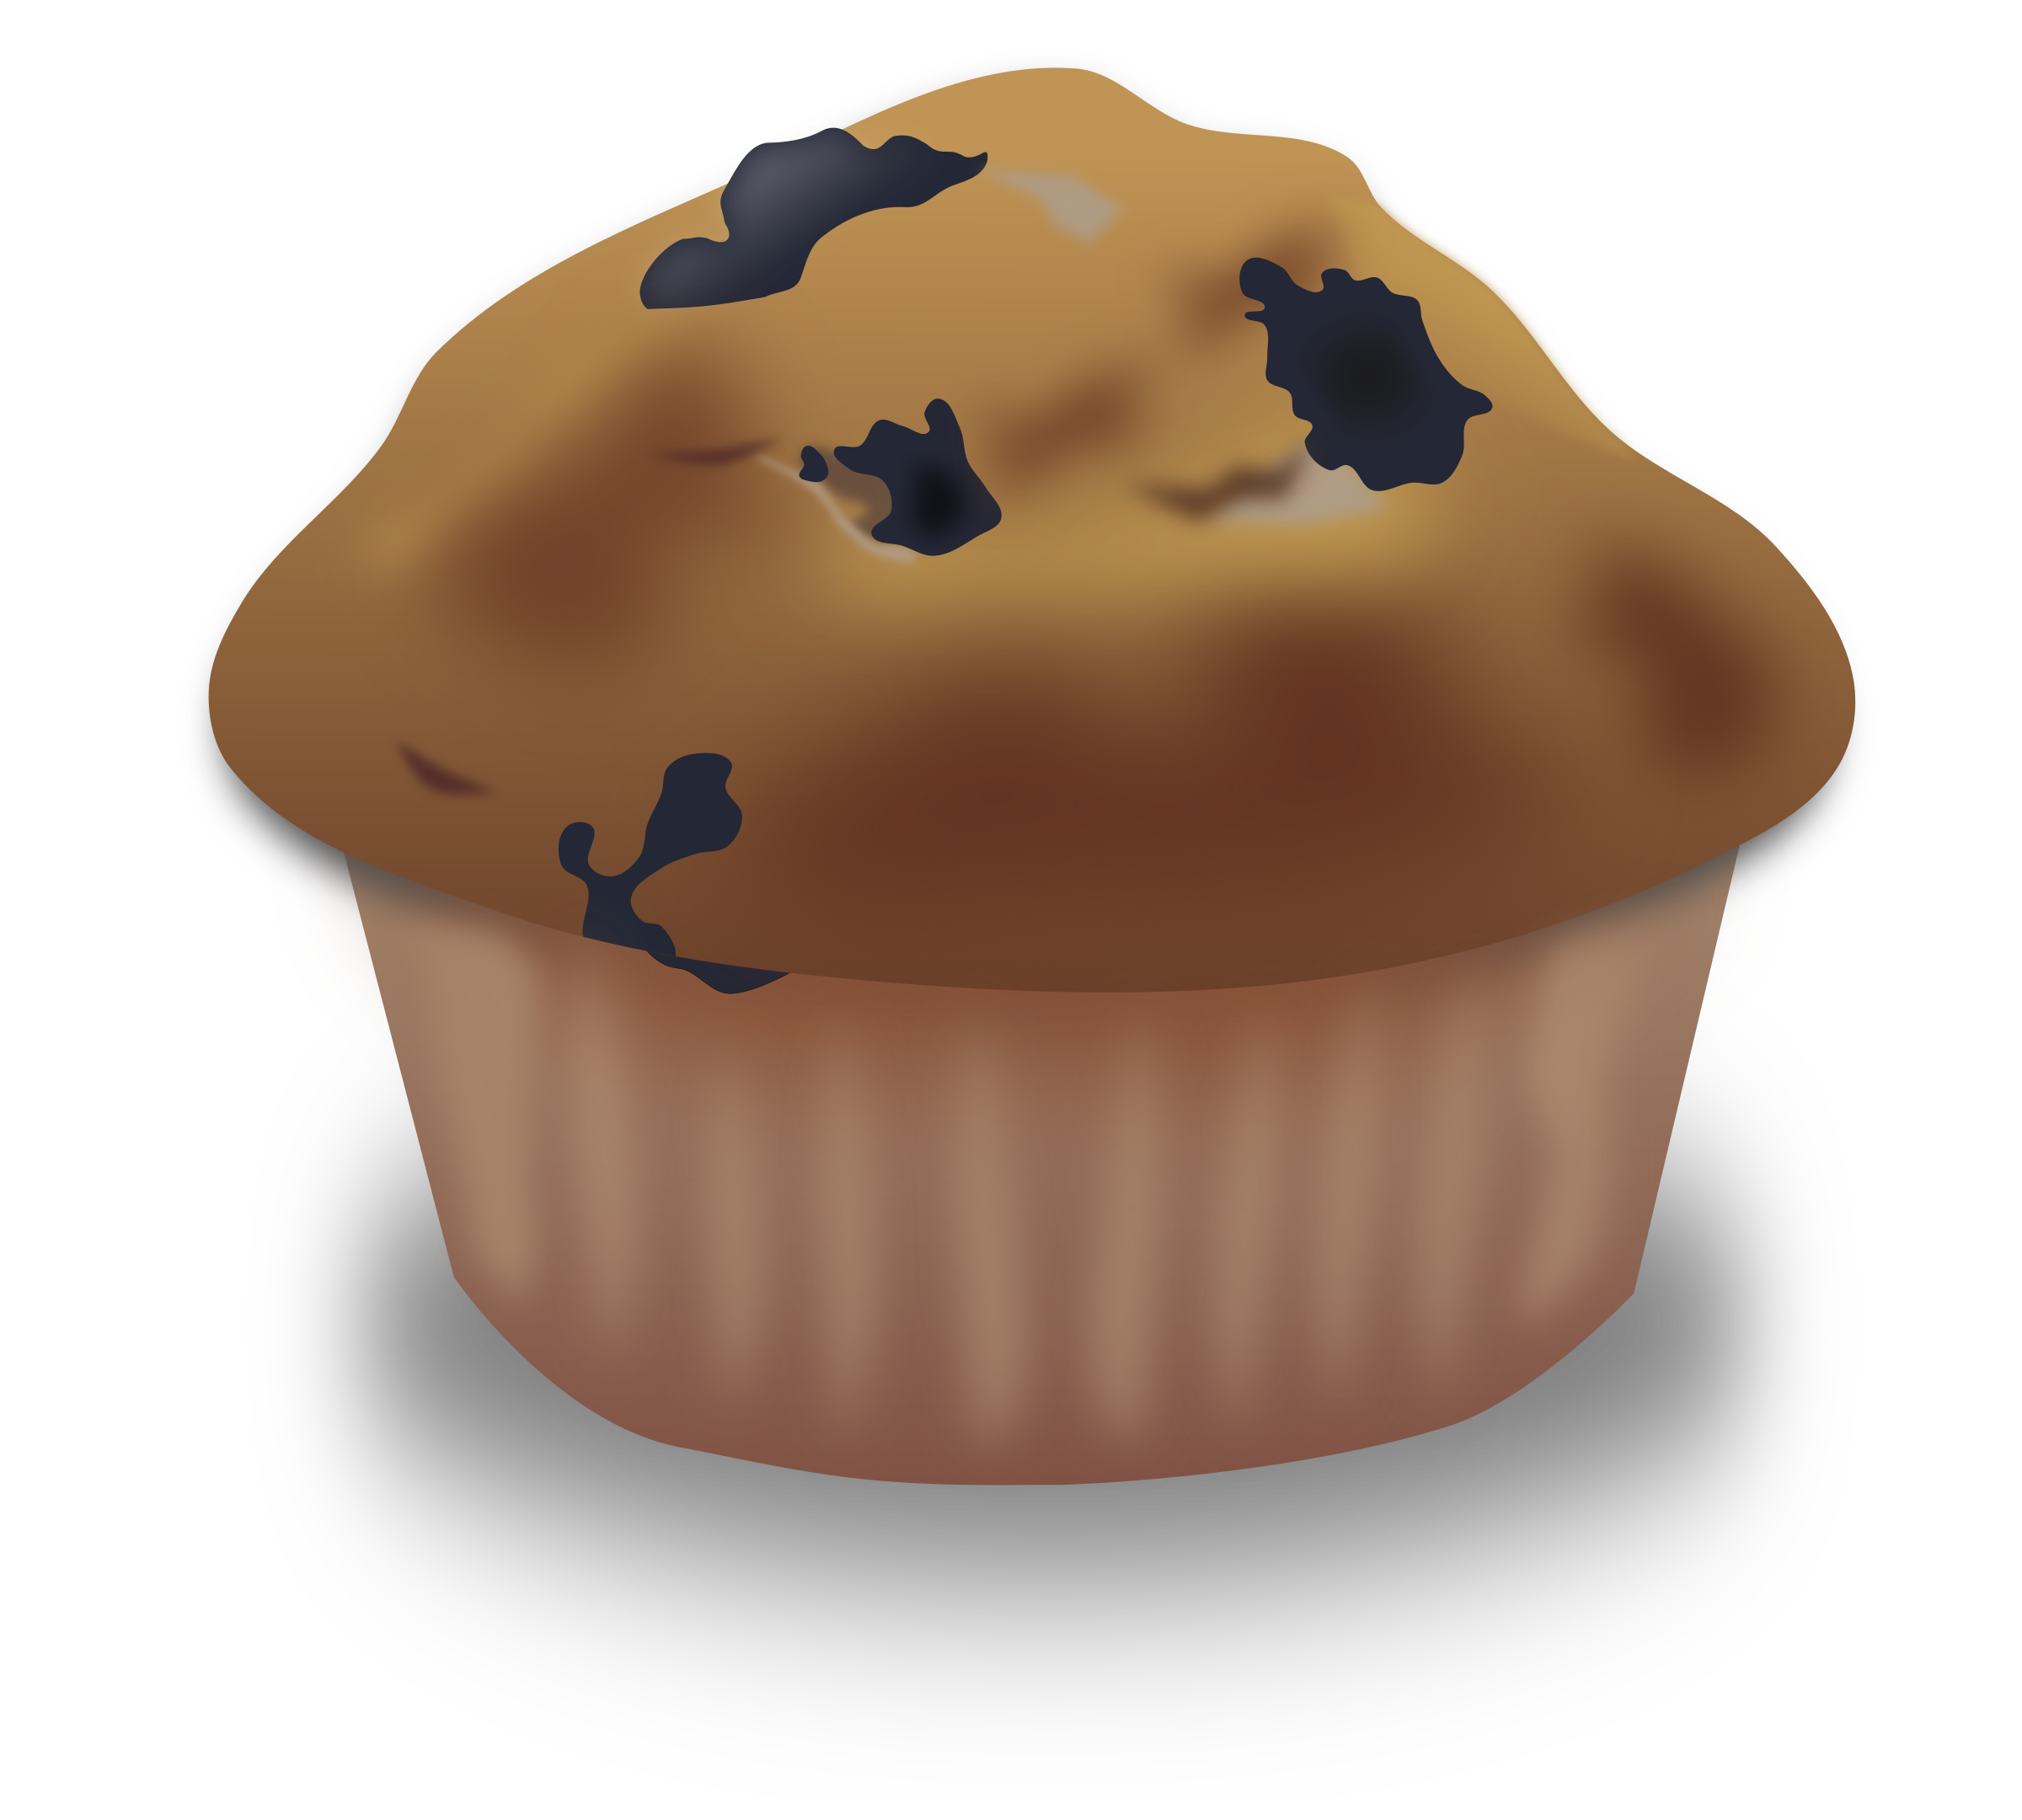 Baking clipart muffin. Blueberry big image png